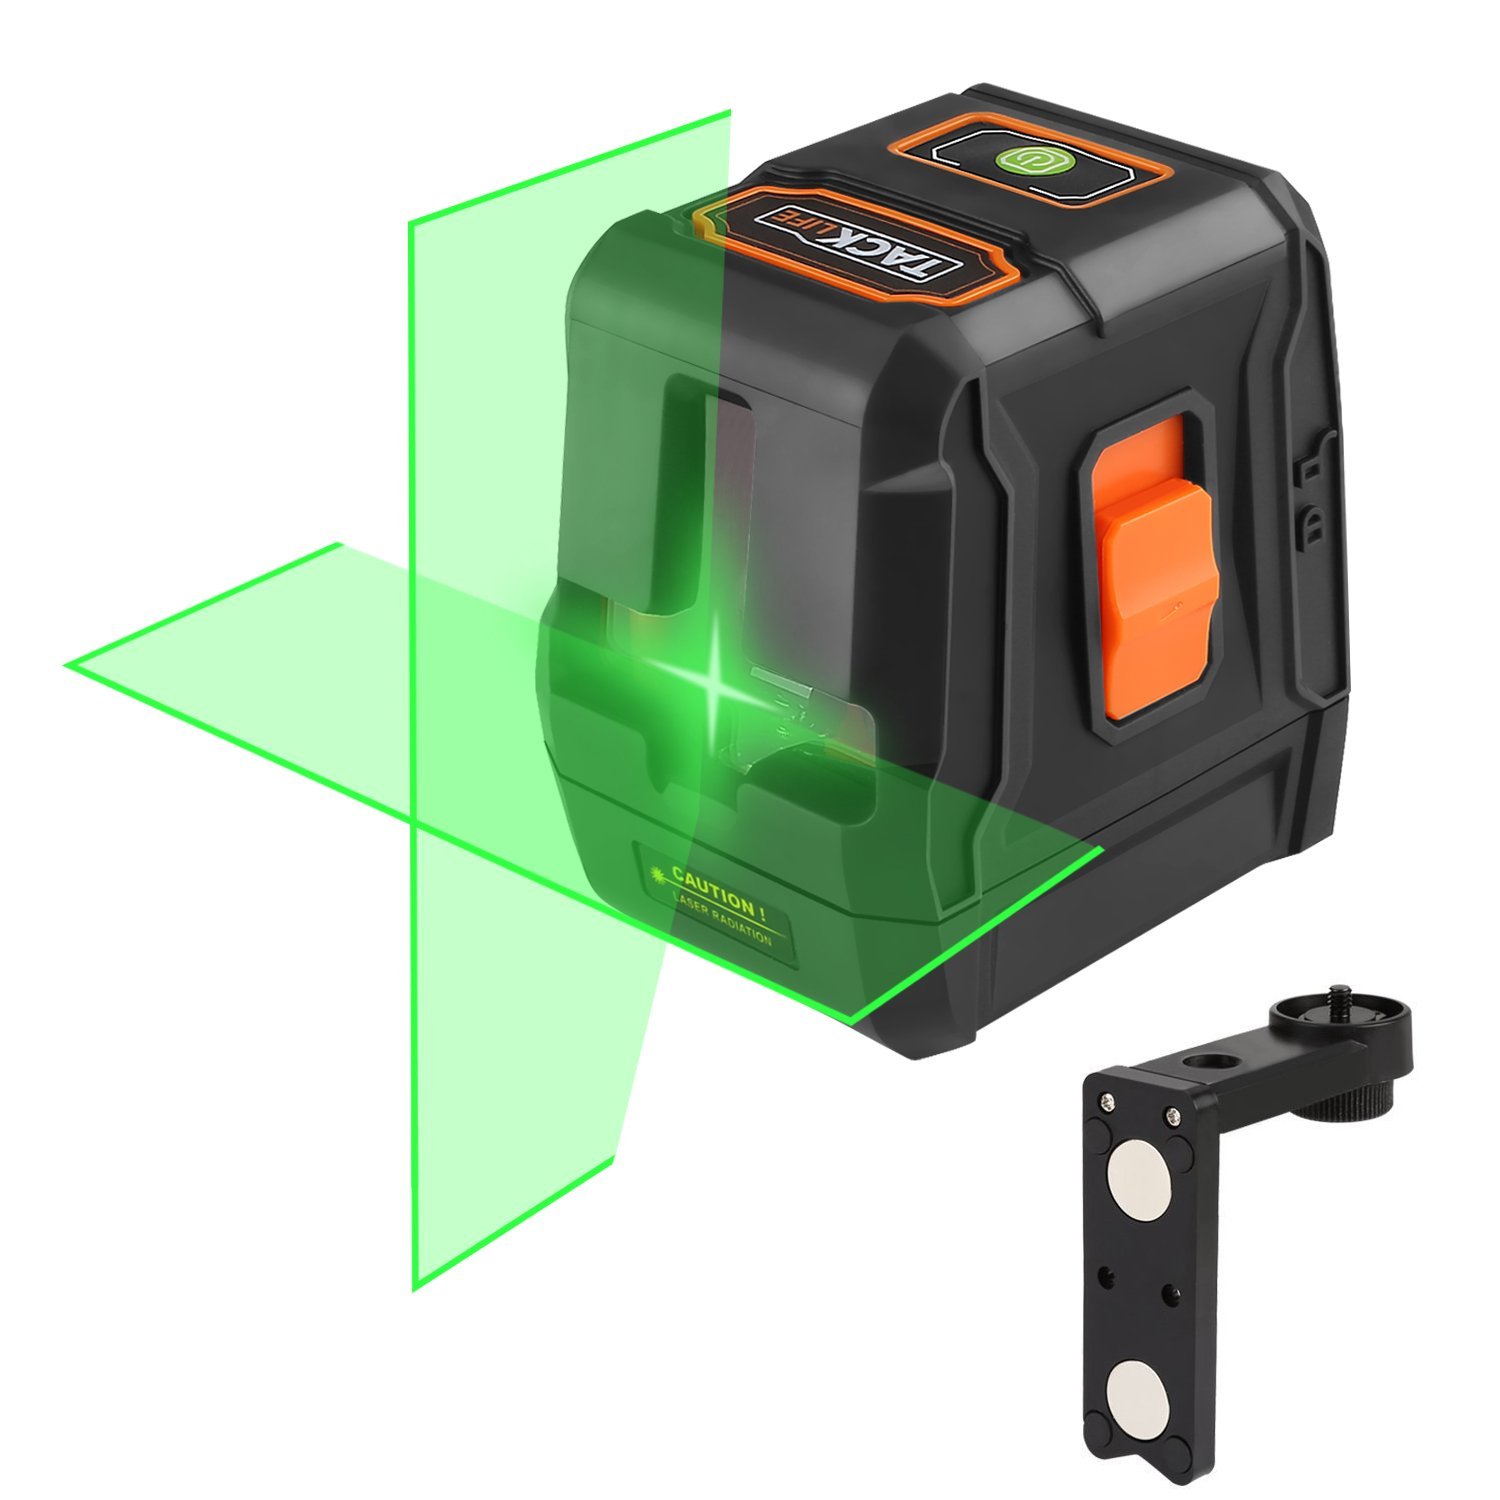 Green Laser Level 98 FeetSelf-Leveling Cross-Line laser - Two Turn-on Ways, Full Soft Rubber Covered, Flexible Magnetic Mount Base, Carrying Pouch, Battery Included - SC-L07G